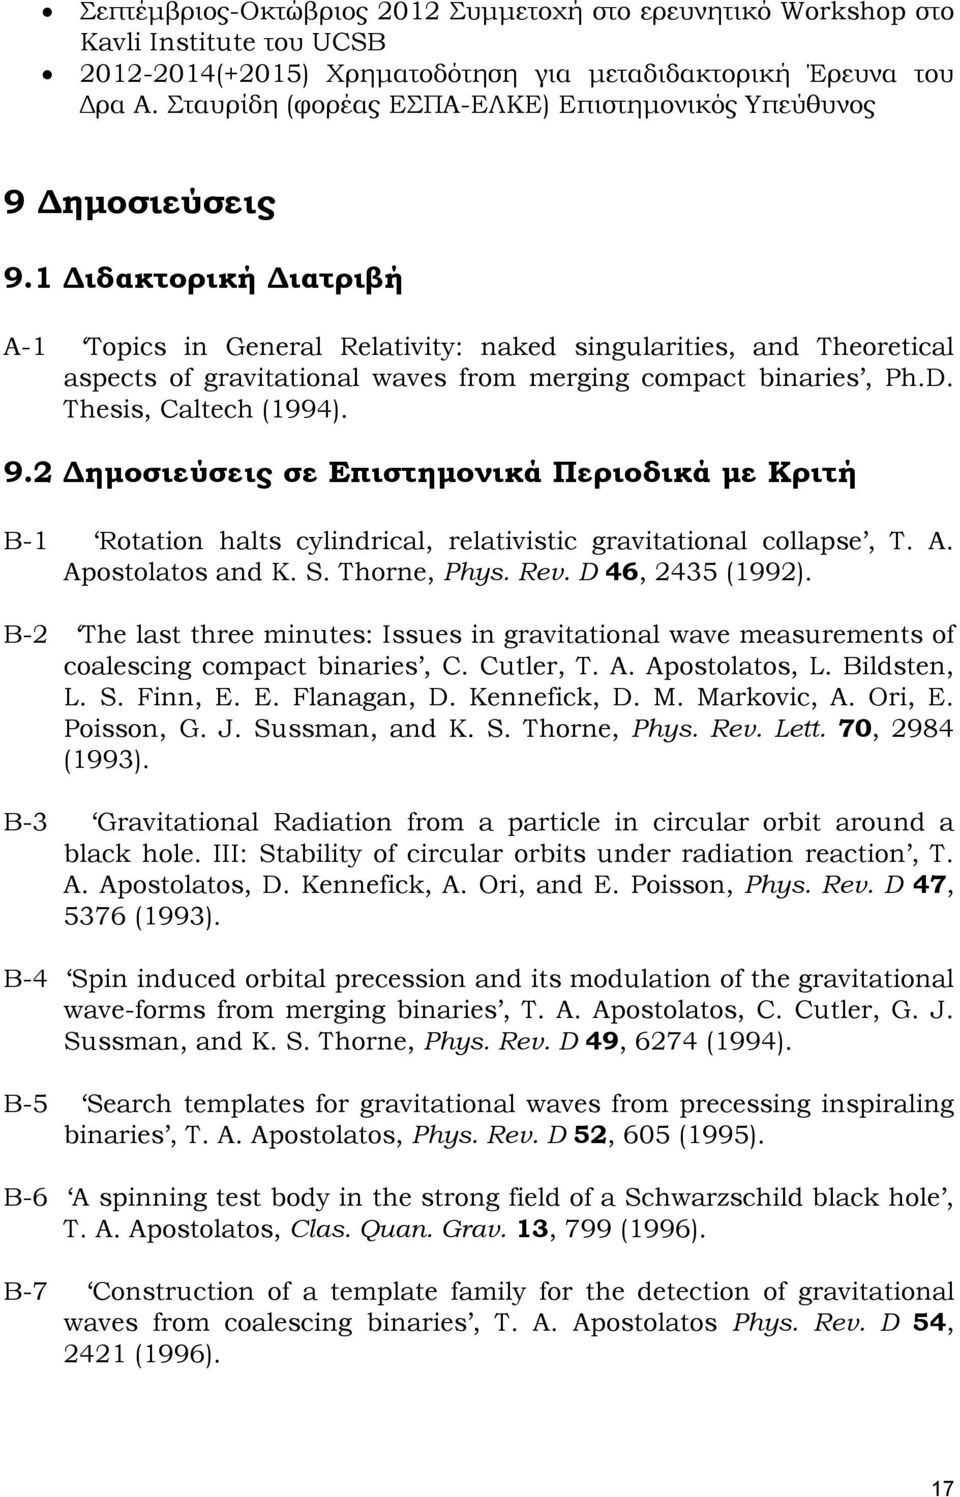 1 Διδακτορική Διατριβή Α-1 Topics in General Relativity: naked singularities, and Theoretical aspects of gravitational waves from merging compact binaries, Ph.D. Thesis, Caltech (1994). 9.